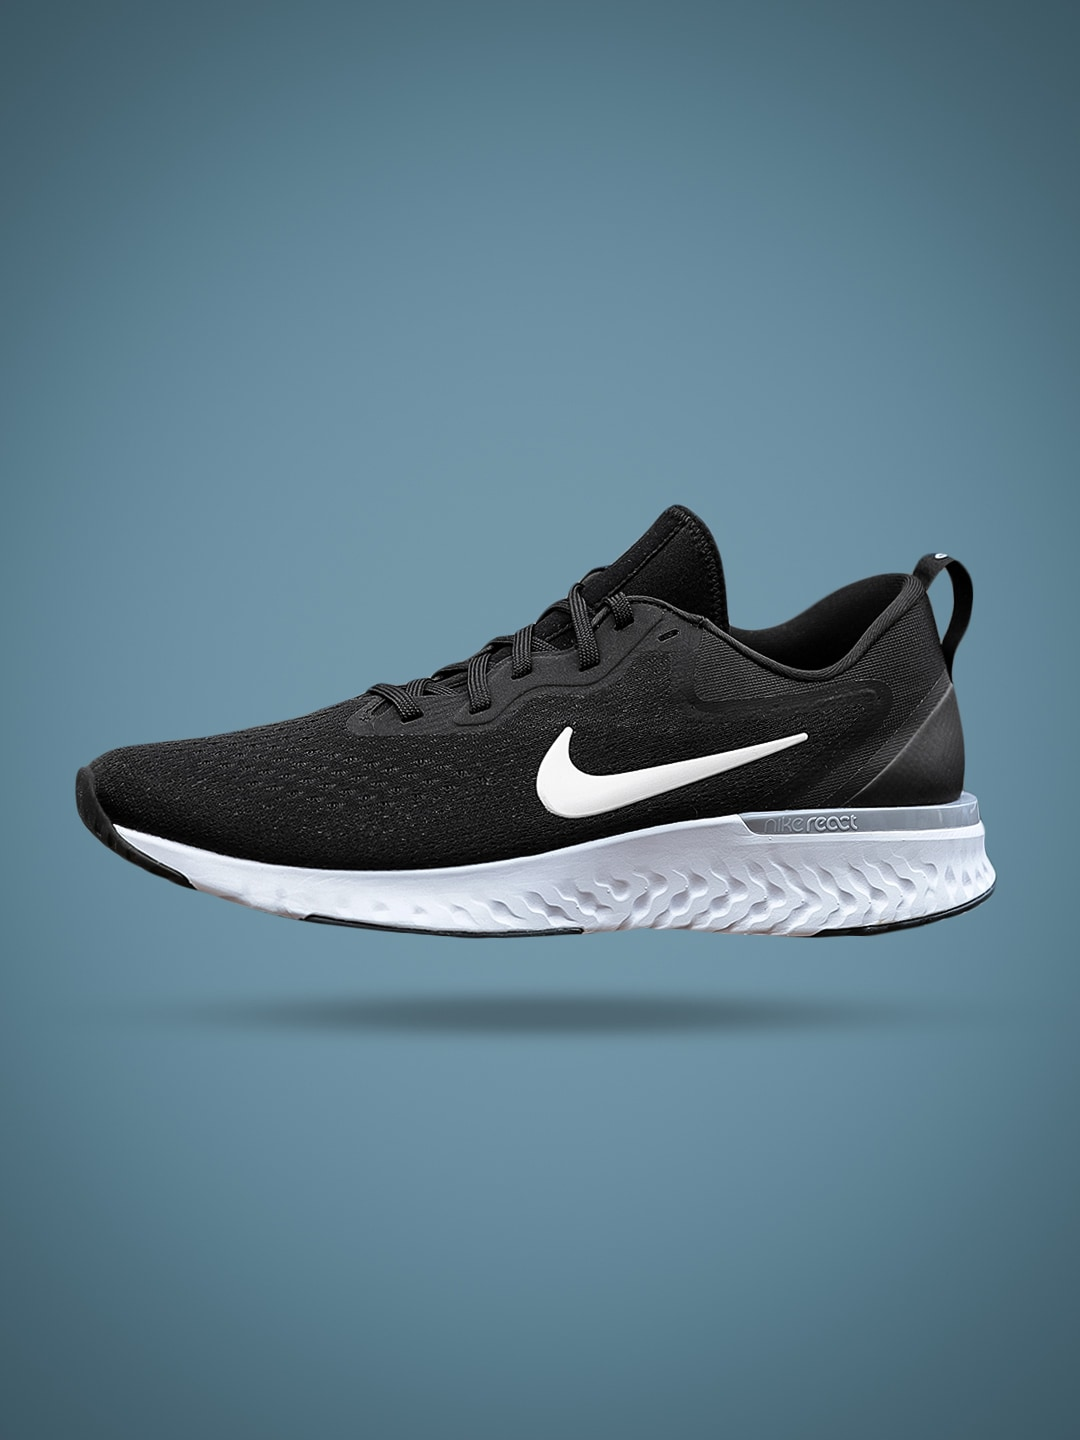 8cd40414e3f Nike Odyssey React Black Running Shoes for Men online in India at ...